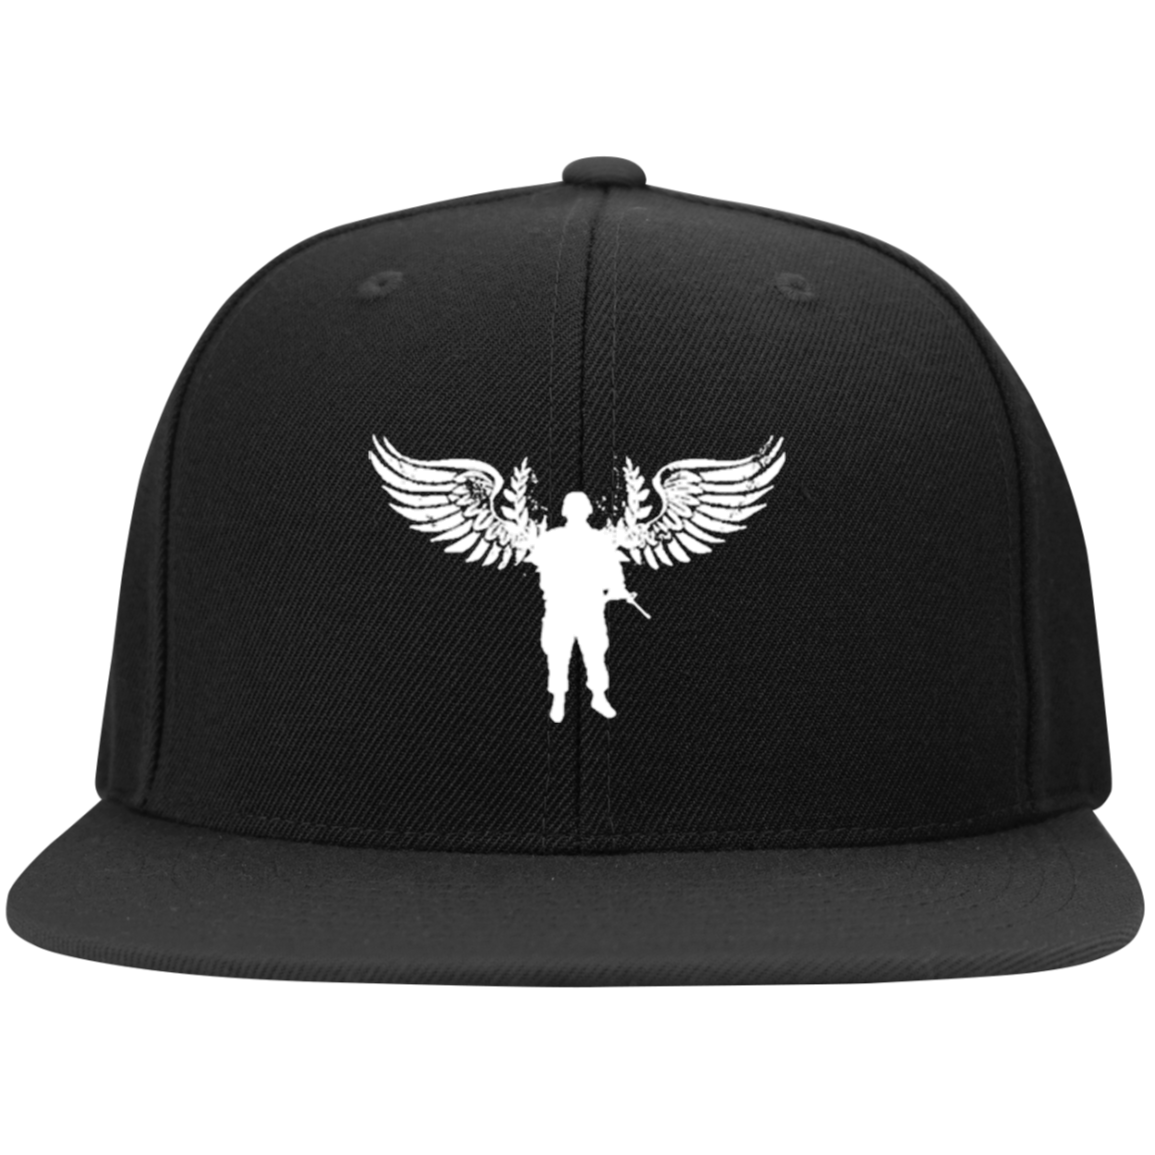 Brothers at Arms -  Snapback Hat - Black